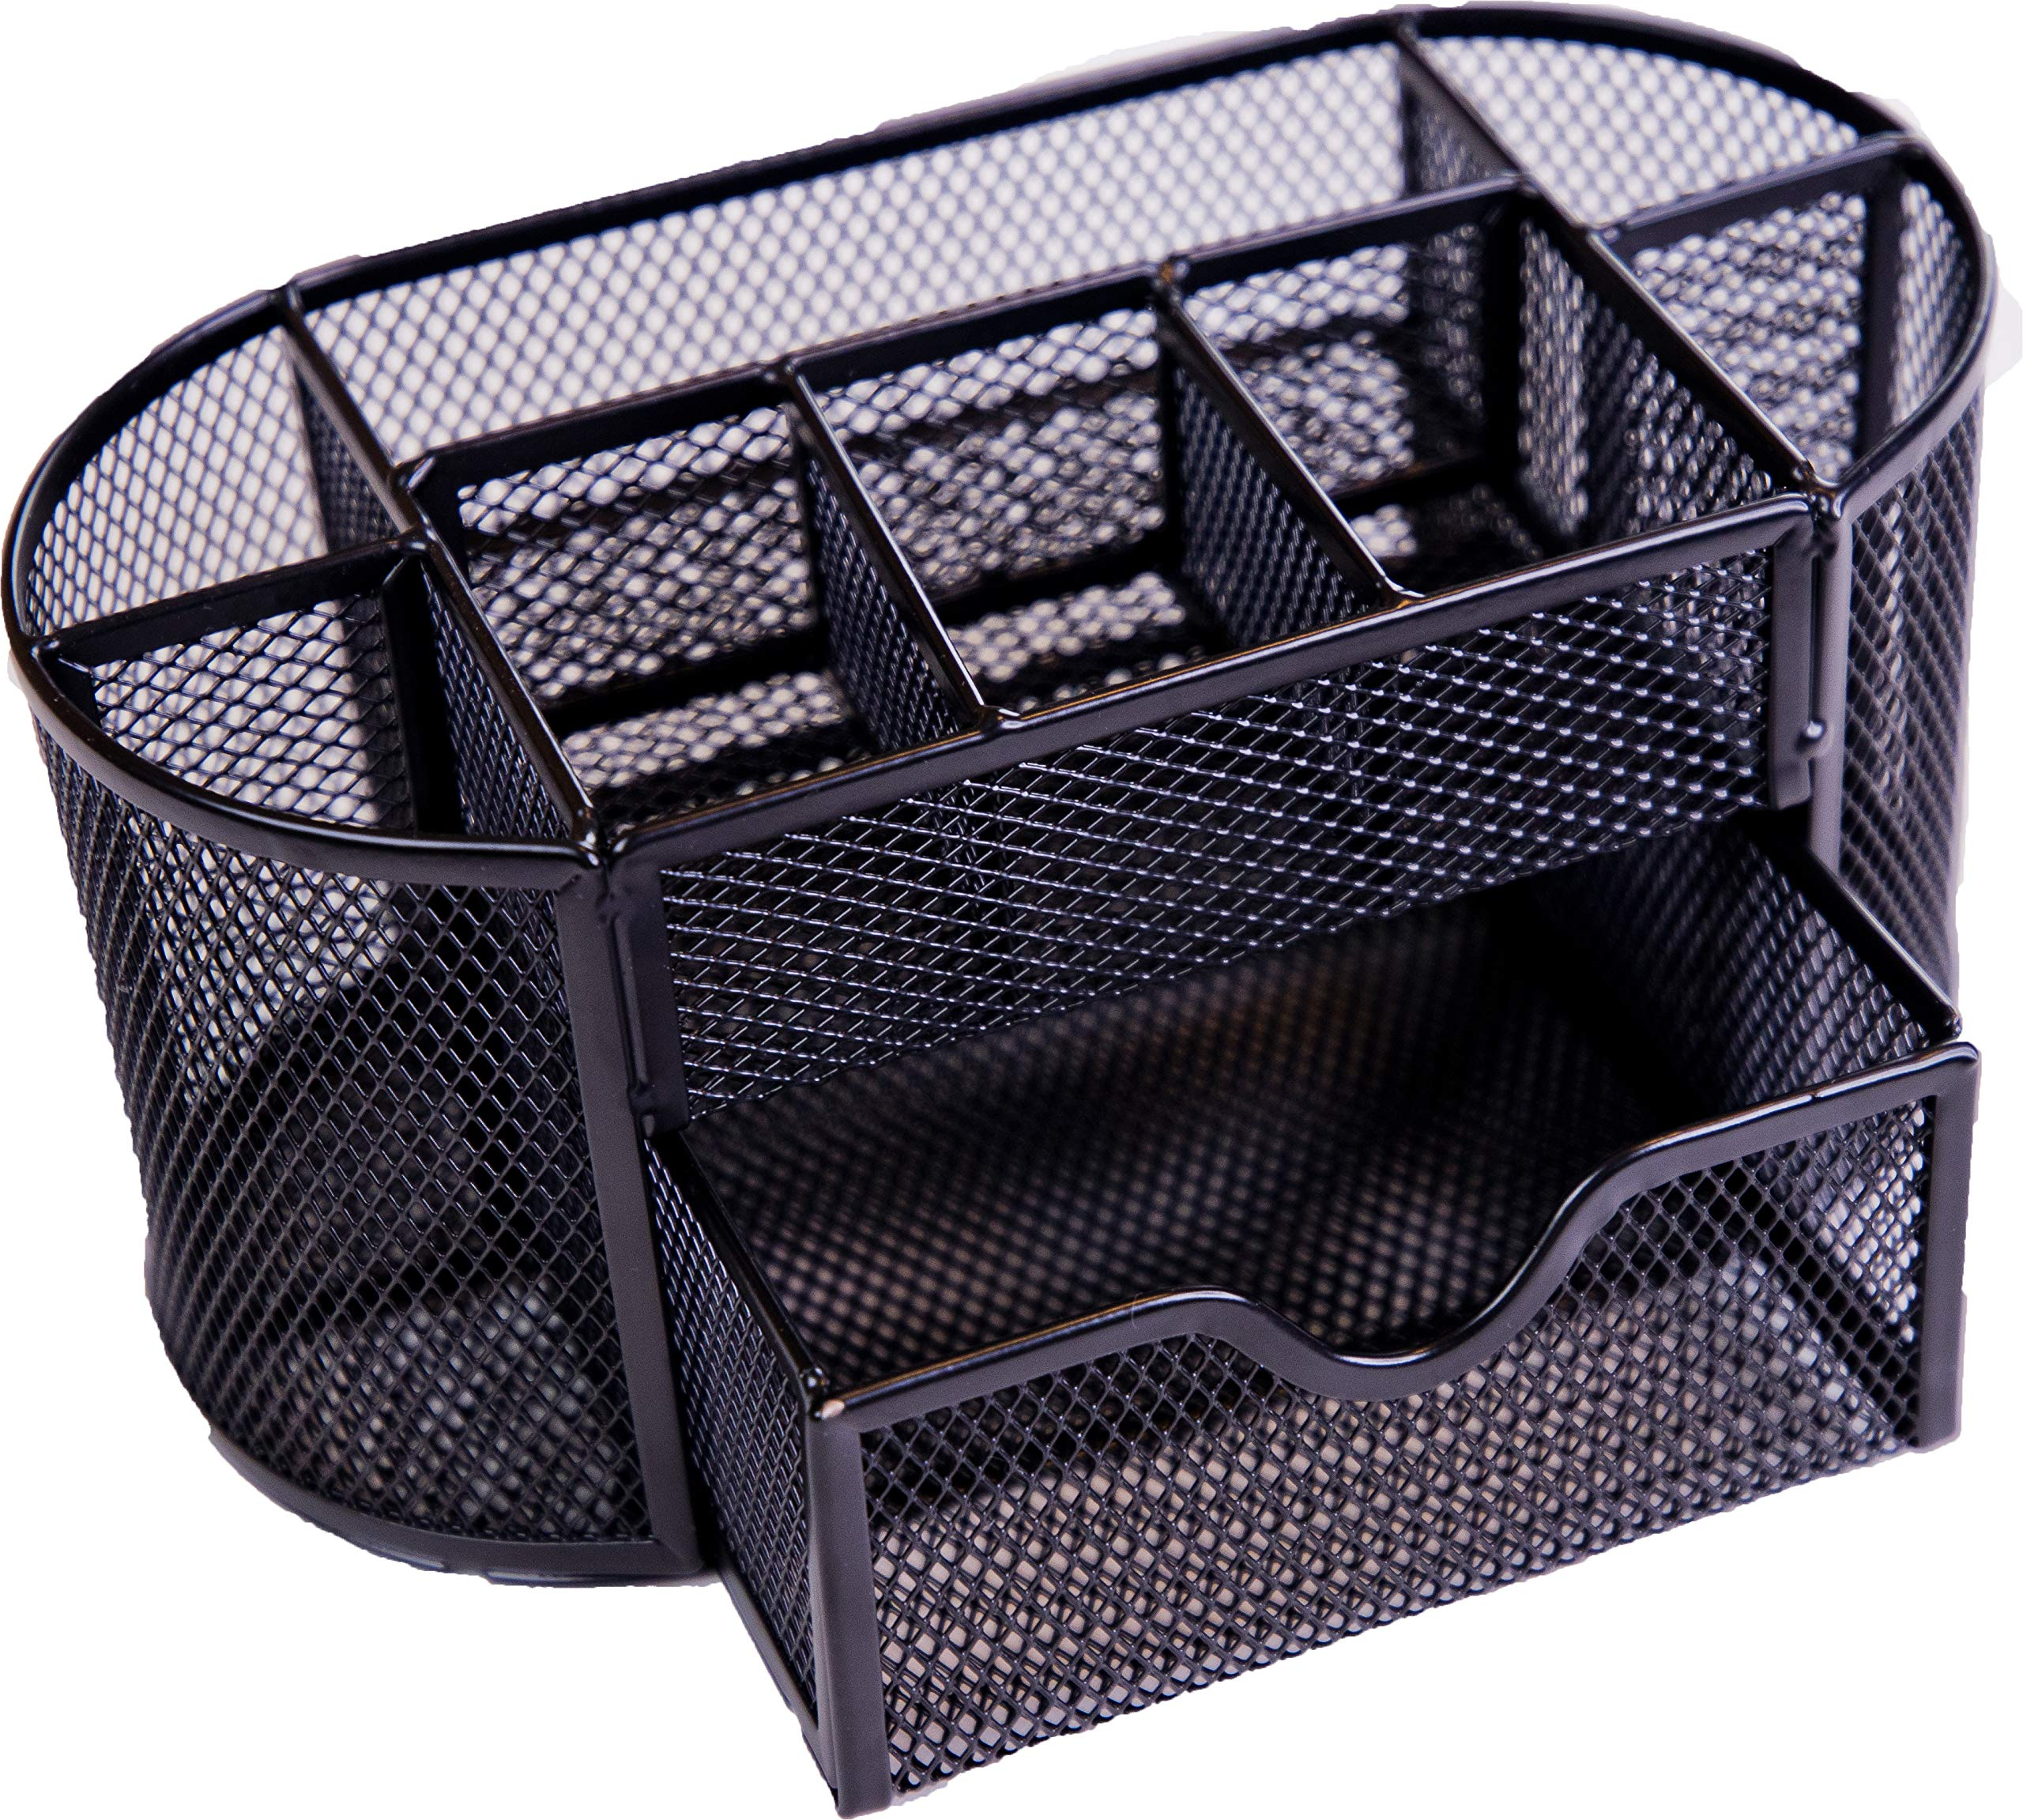 Luminous Group Mesh Office Supplies Desk Organizer Pen Holder Caddy with 9 Compartments for Desk Organization, Black